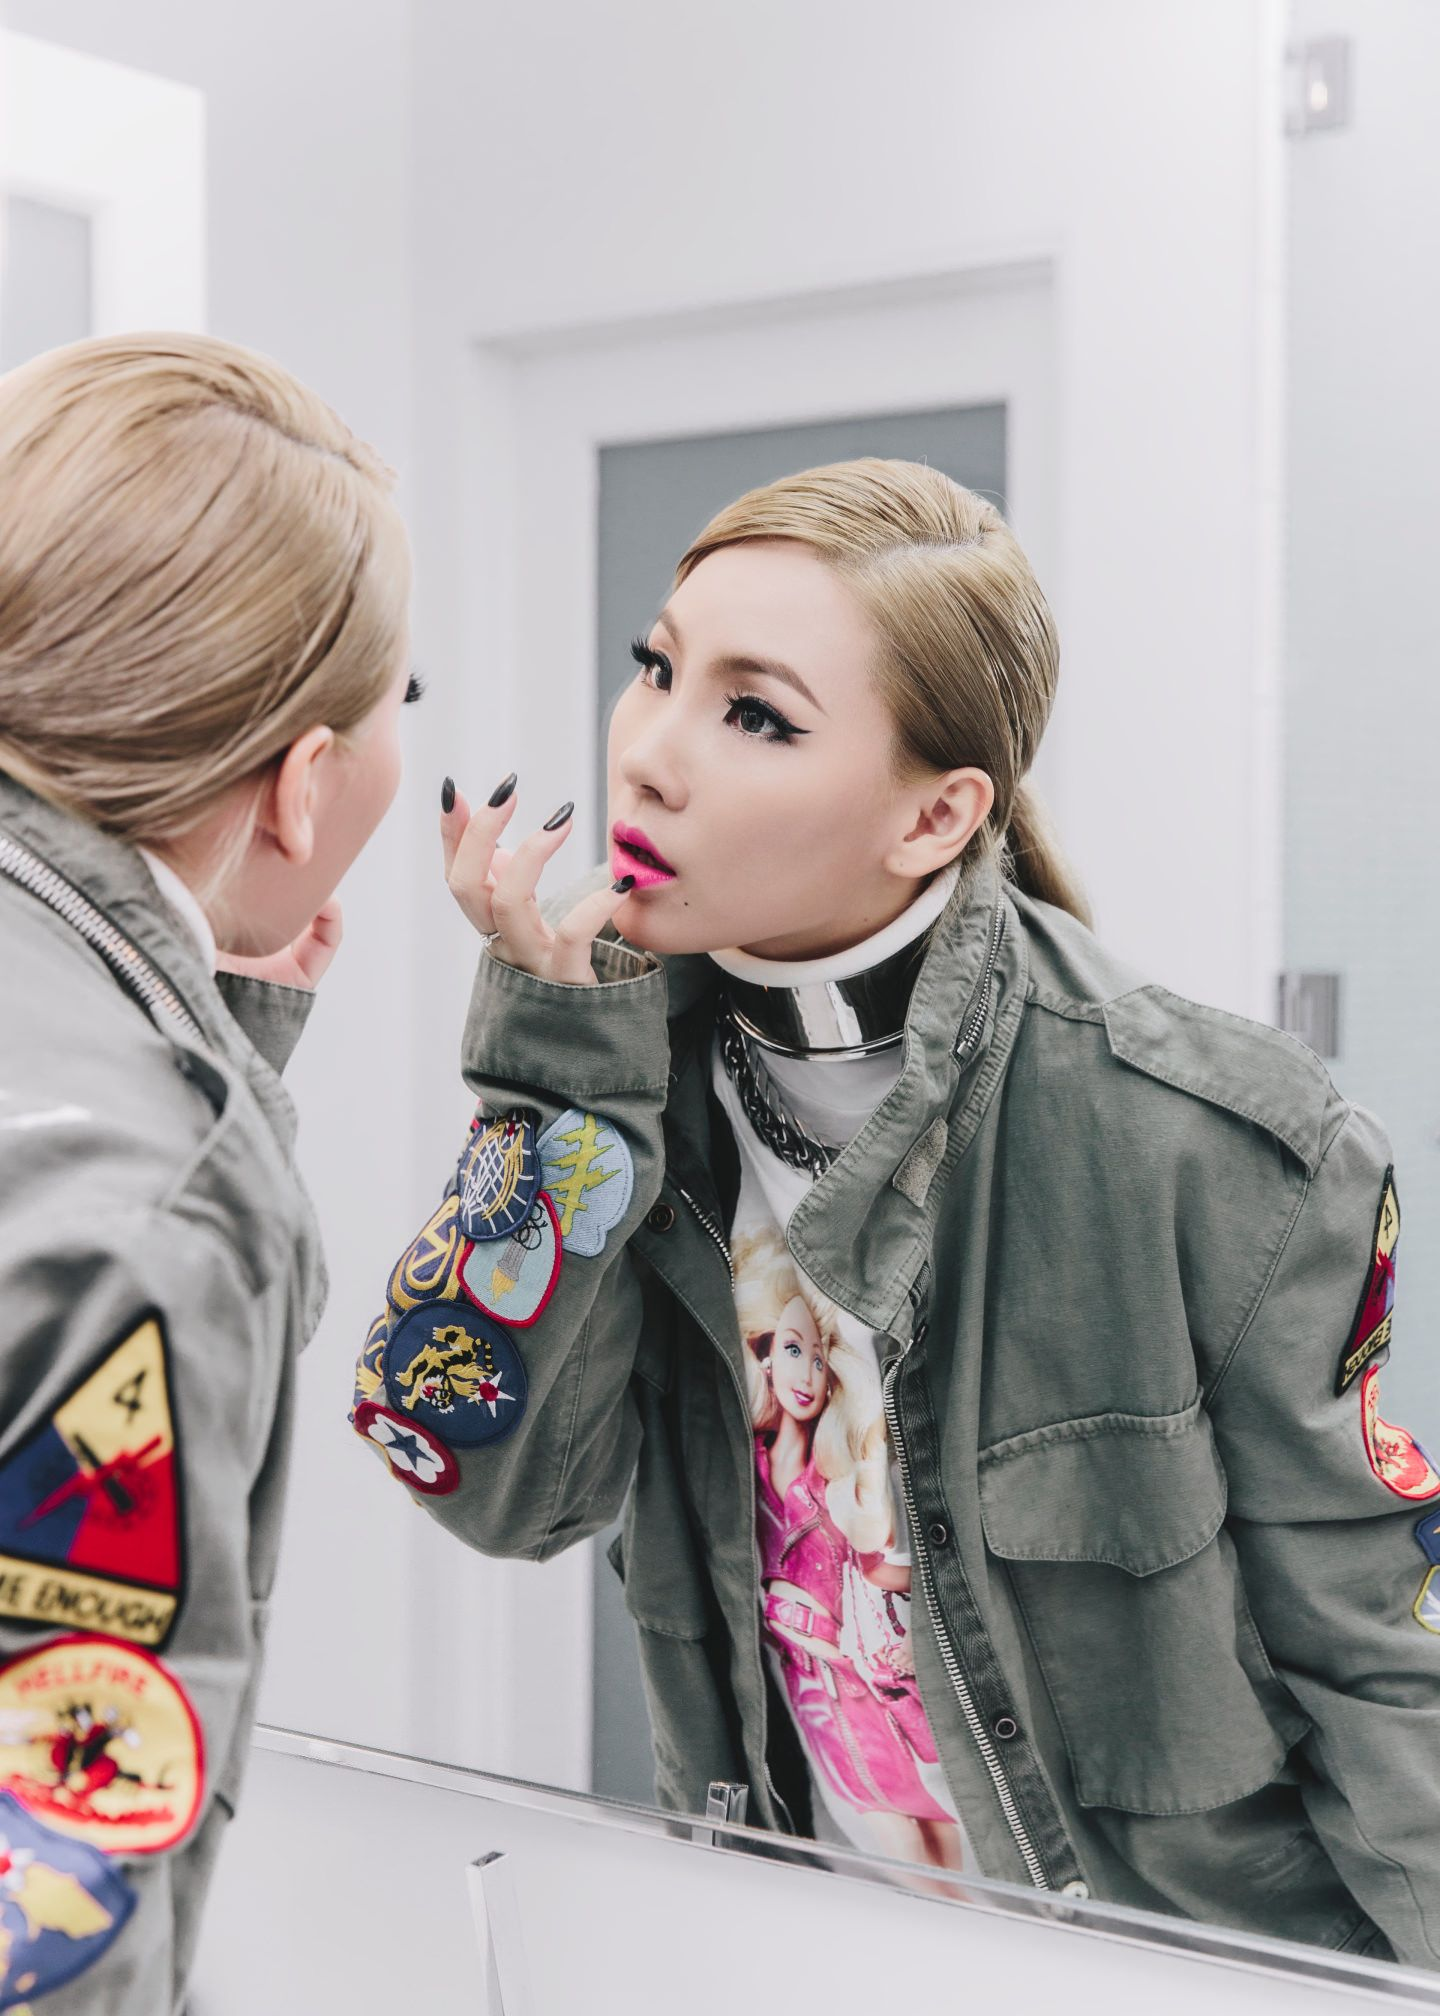 meet cl the k pop star who s actually about to cross over interview 15 2015 fader meet cl the k pop star